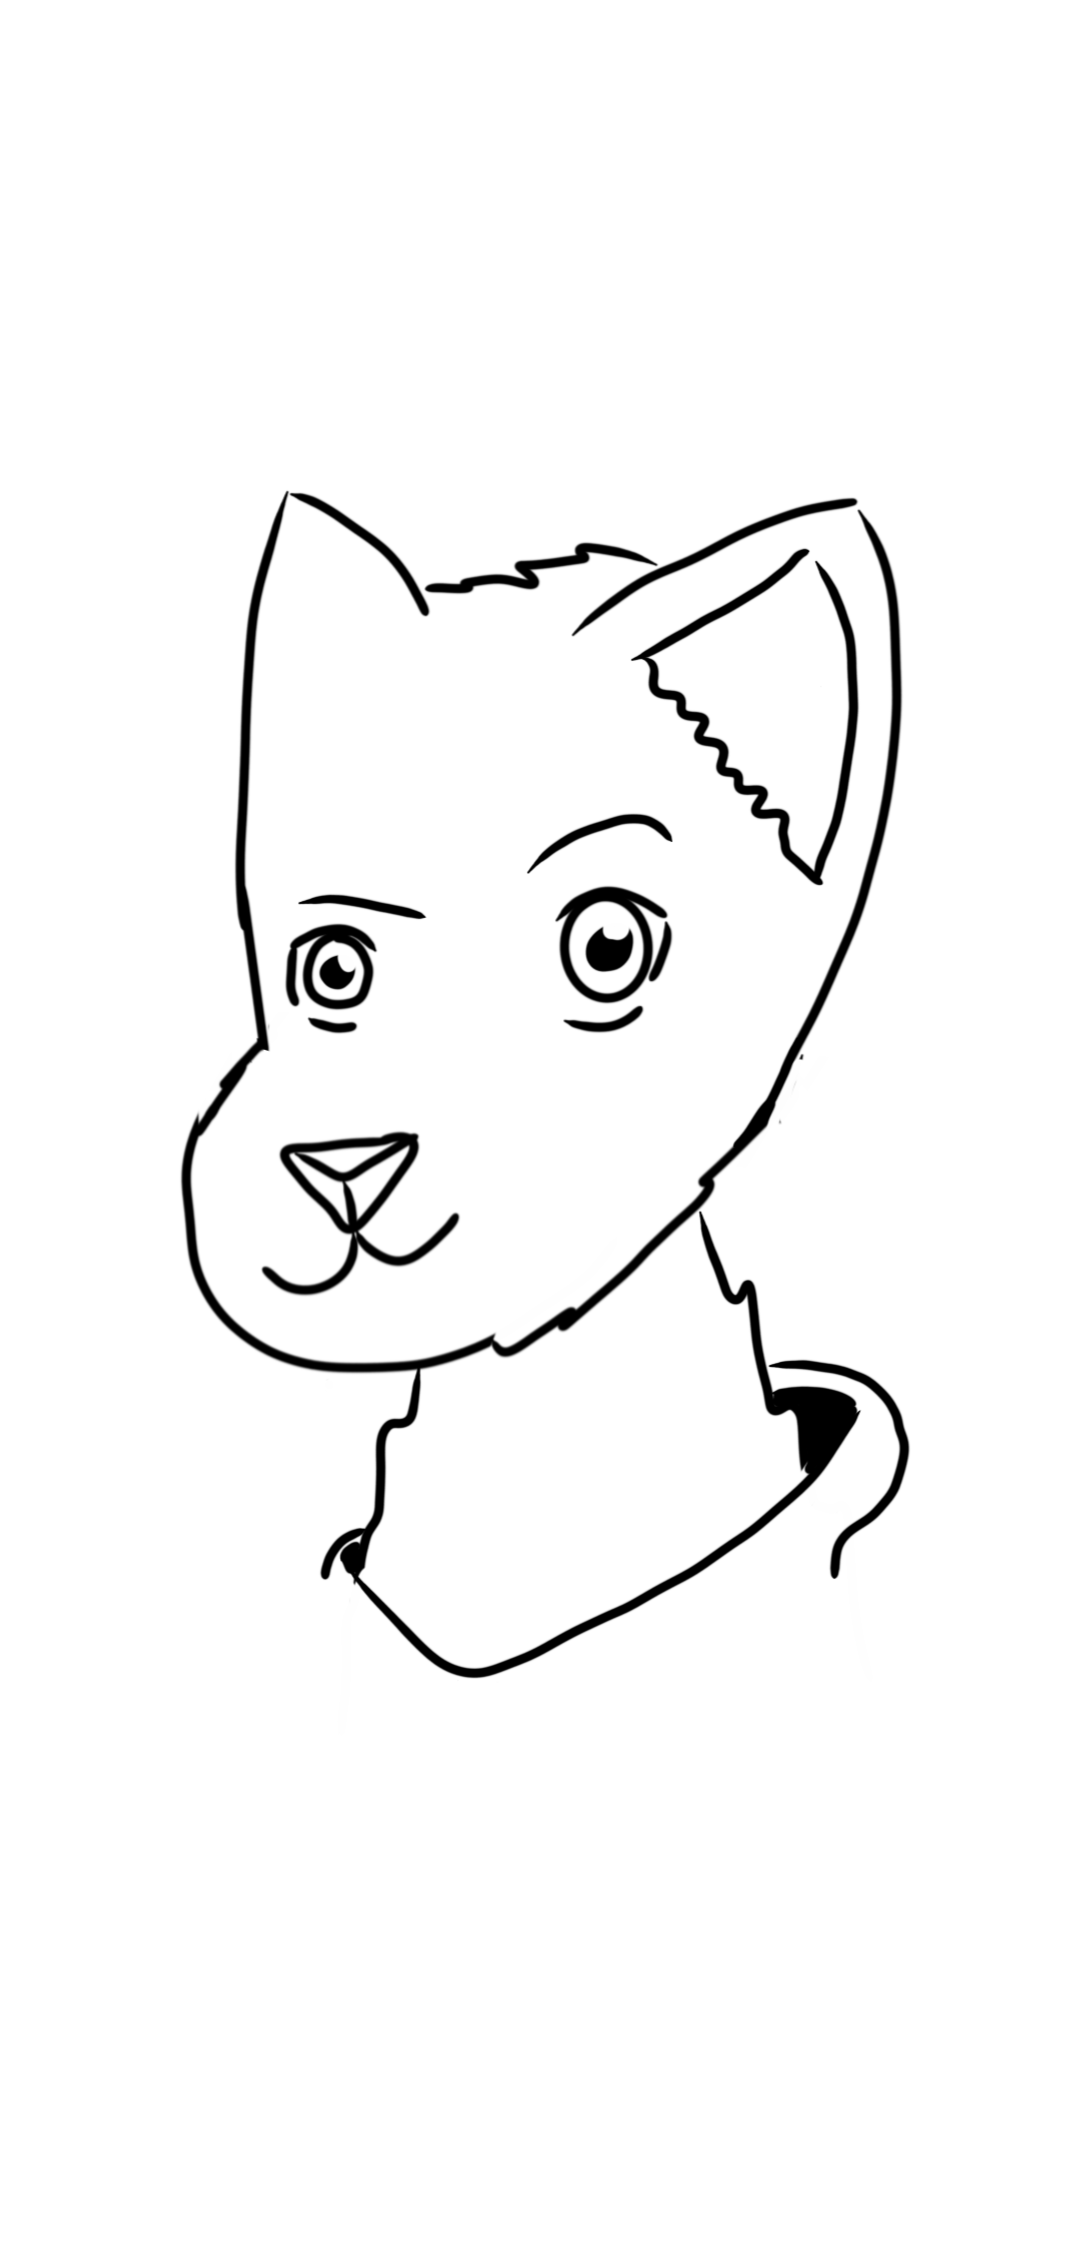 Furry attempt 1